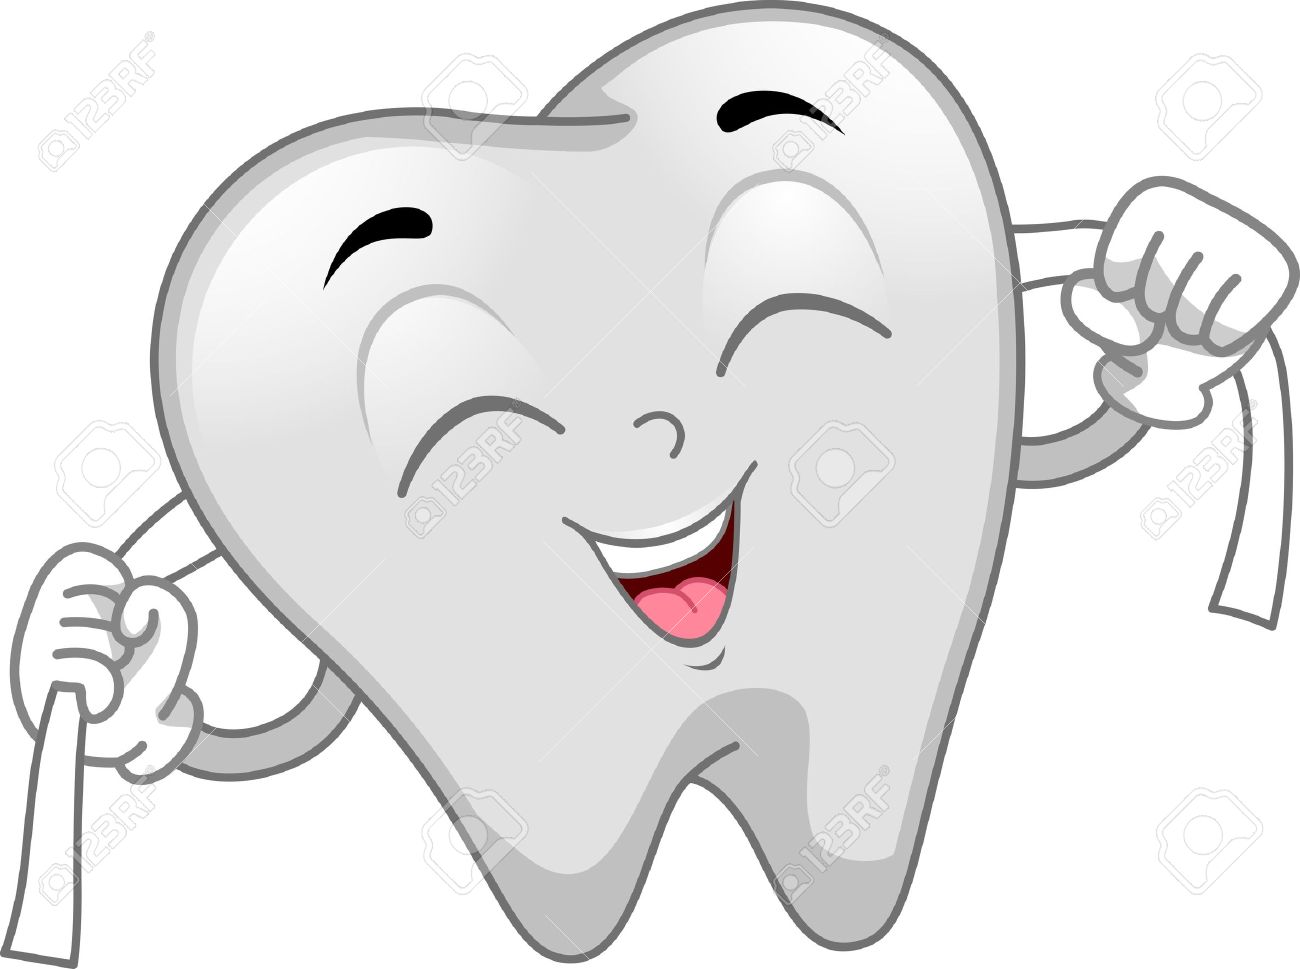 Mascot Illustration Featuring A Tooth Flossing Stock